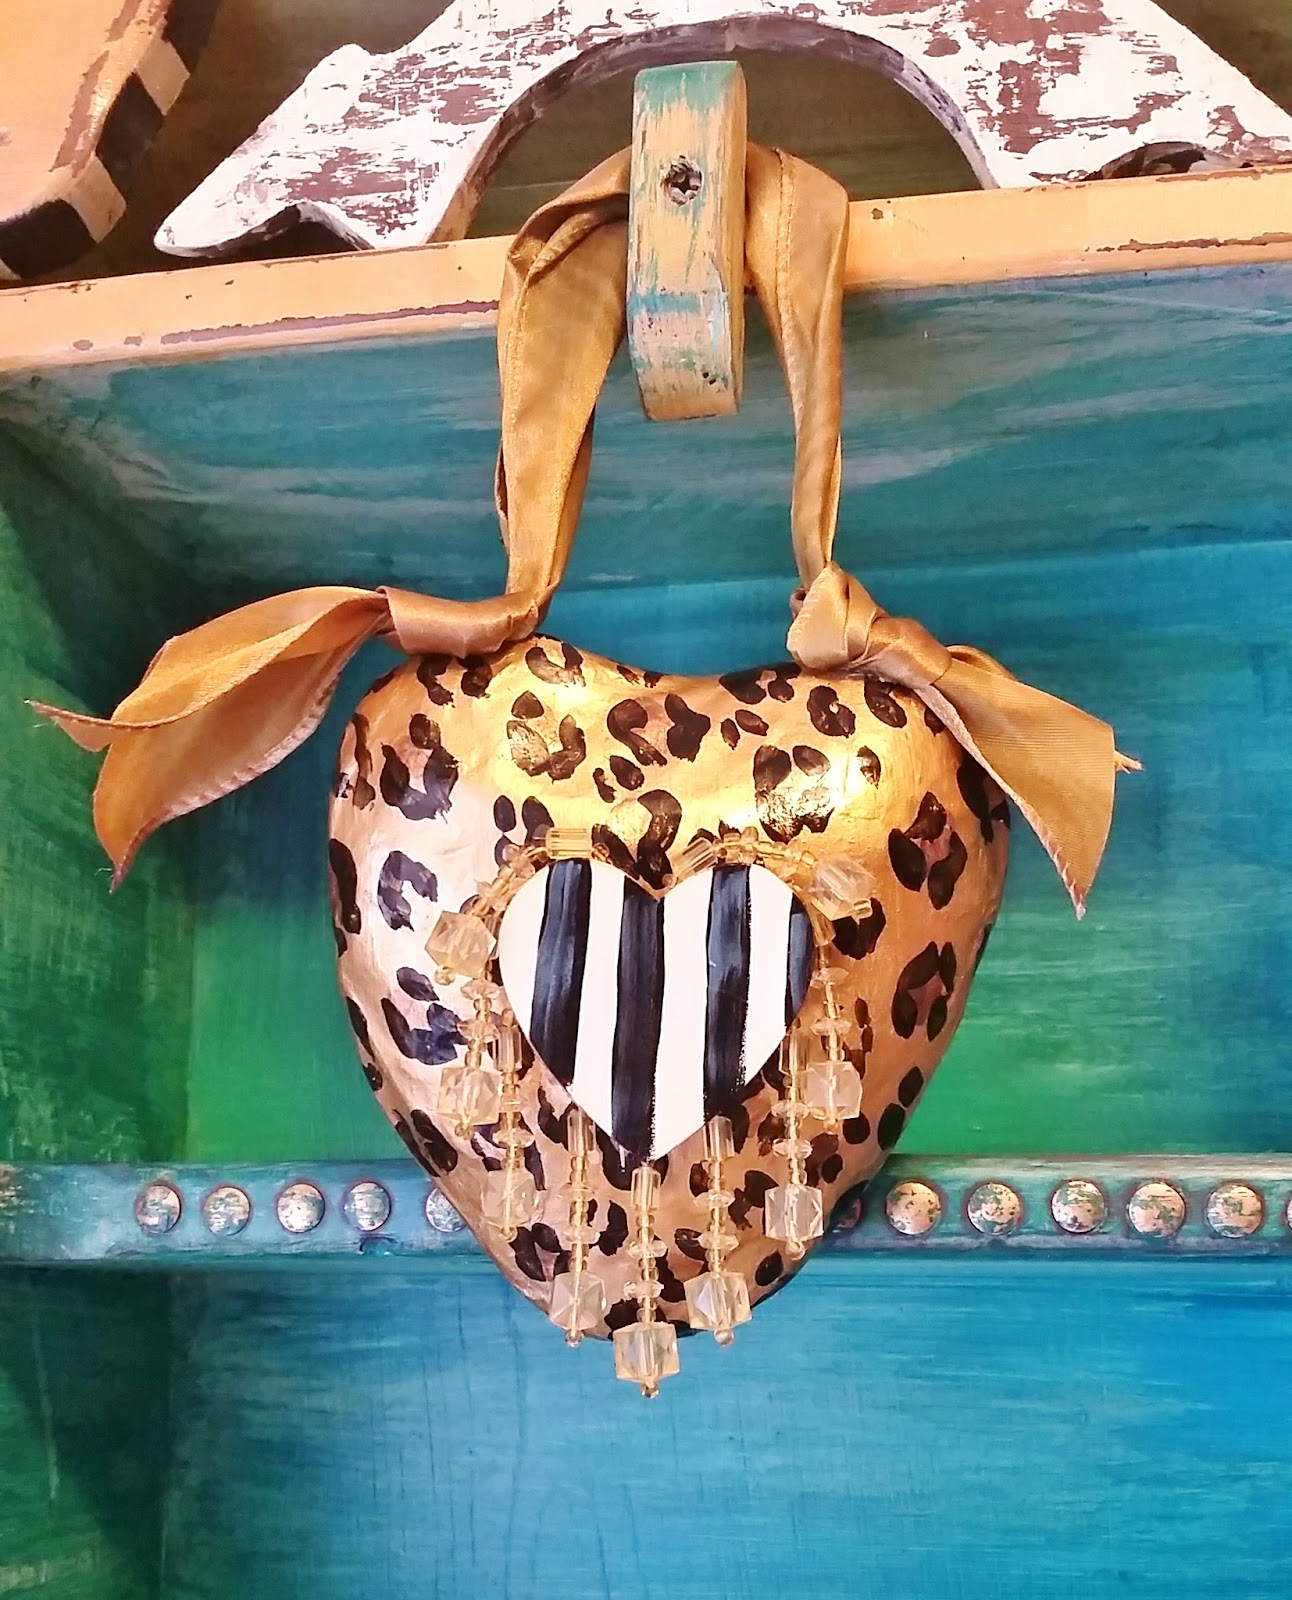 hand painted animal print heart door knob hanger ornament, gift